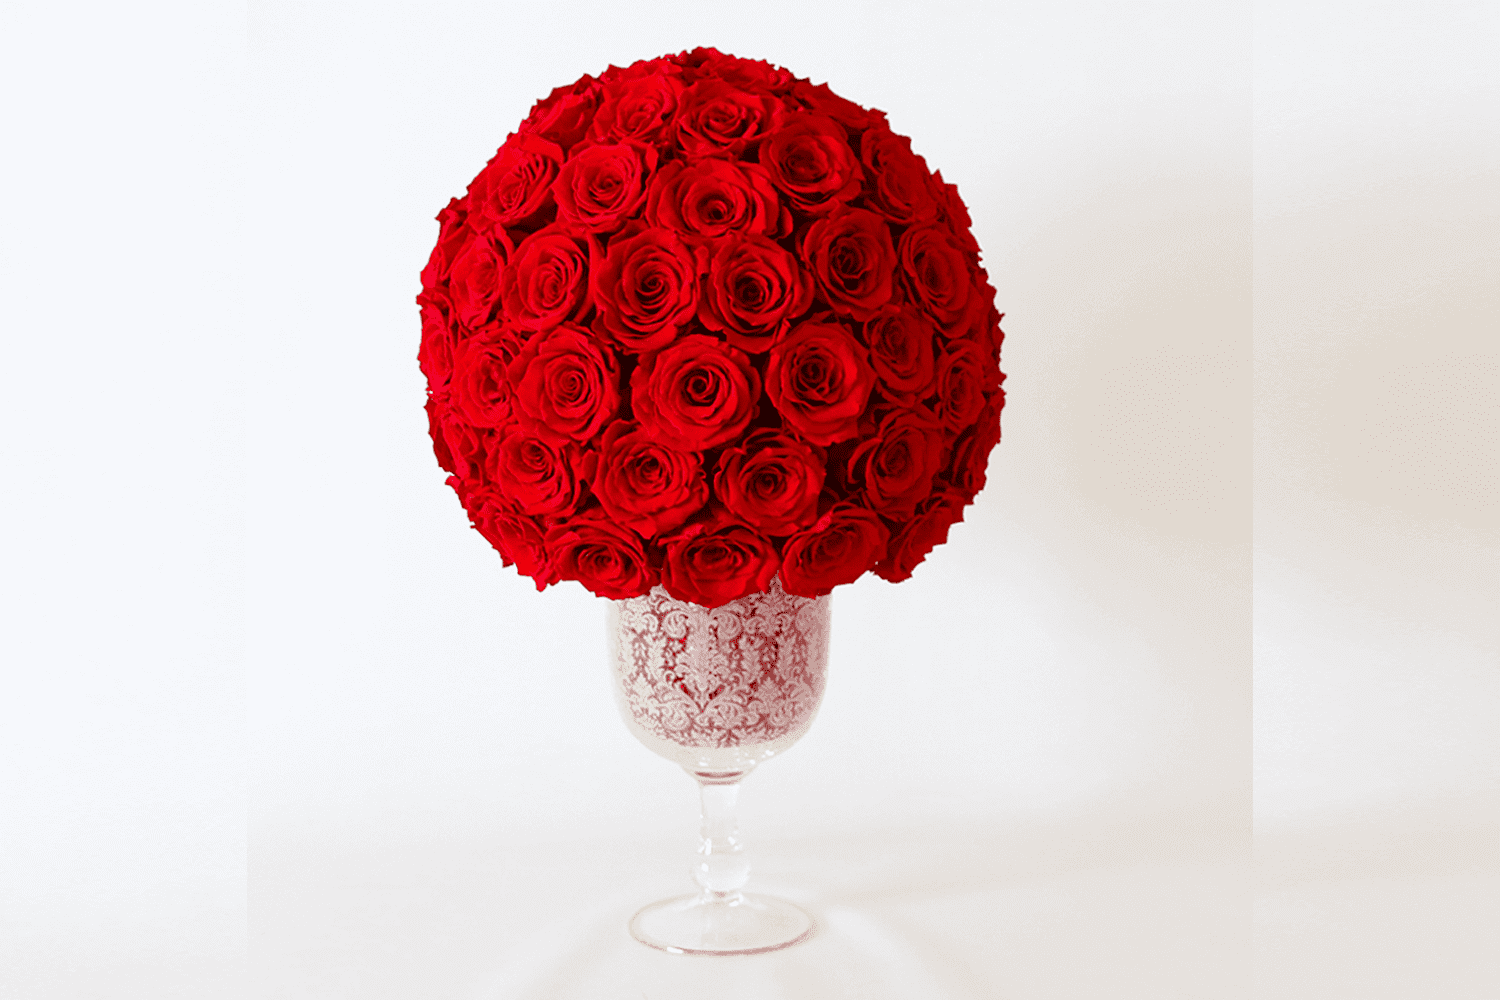 Red long lasting roses in a crystal vase